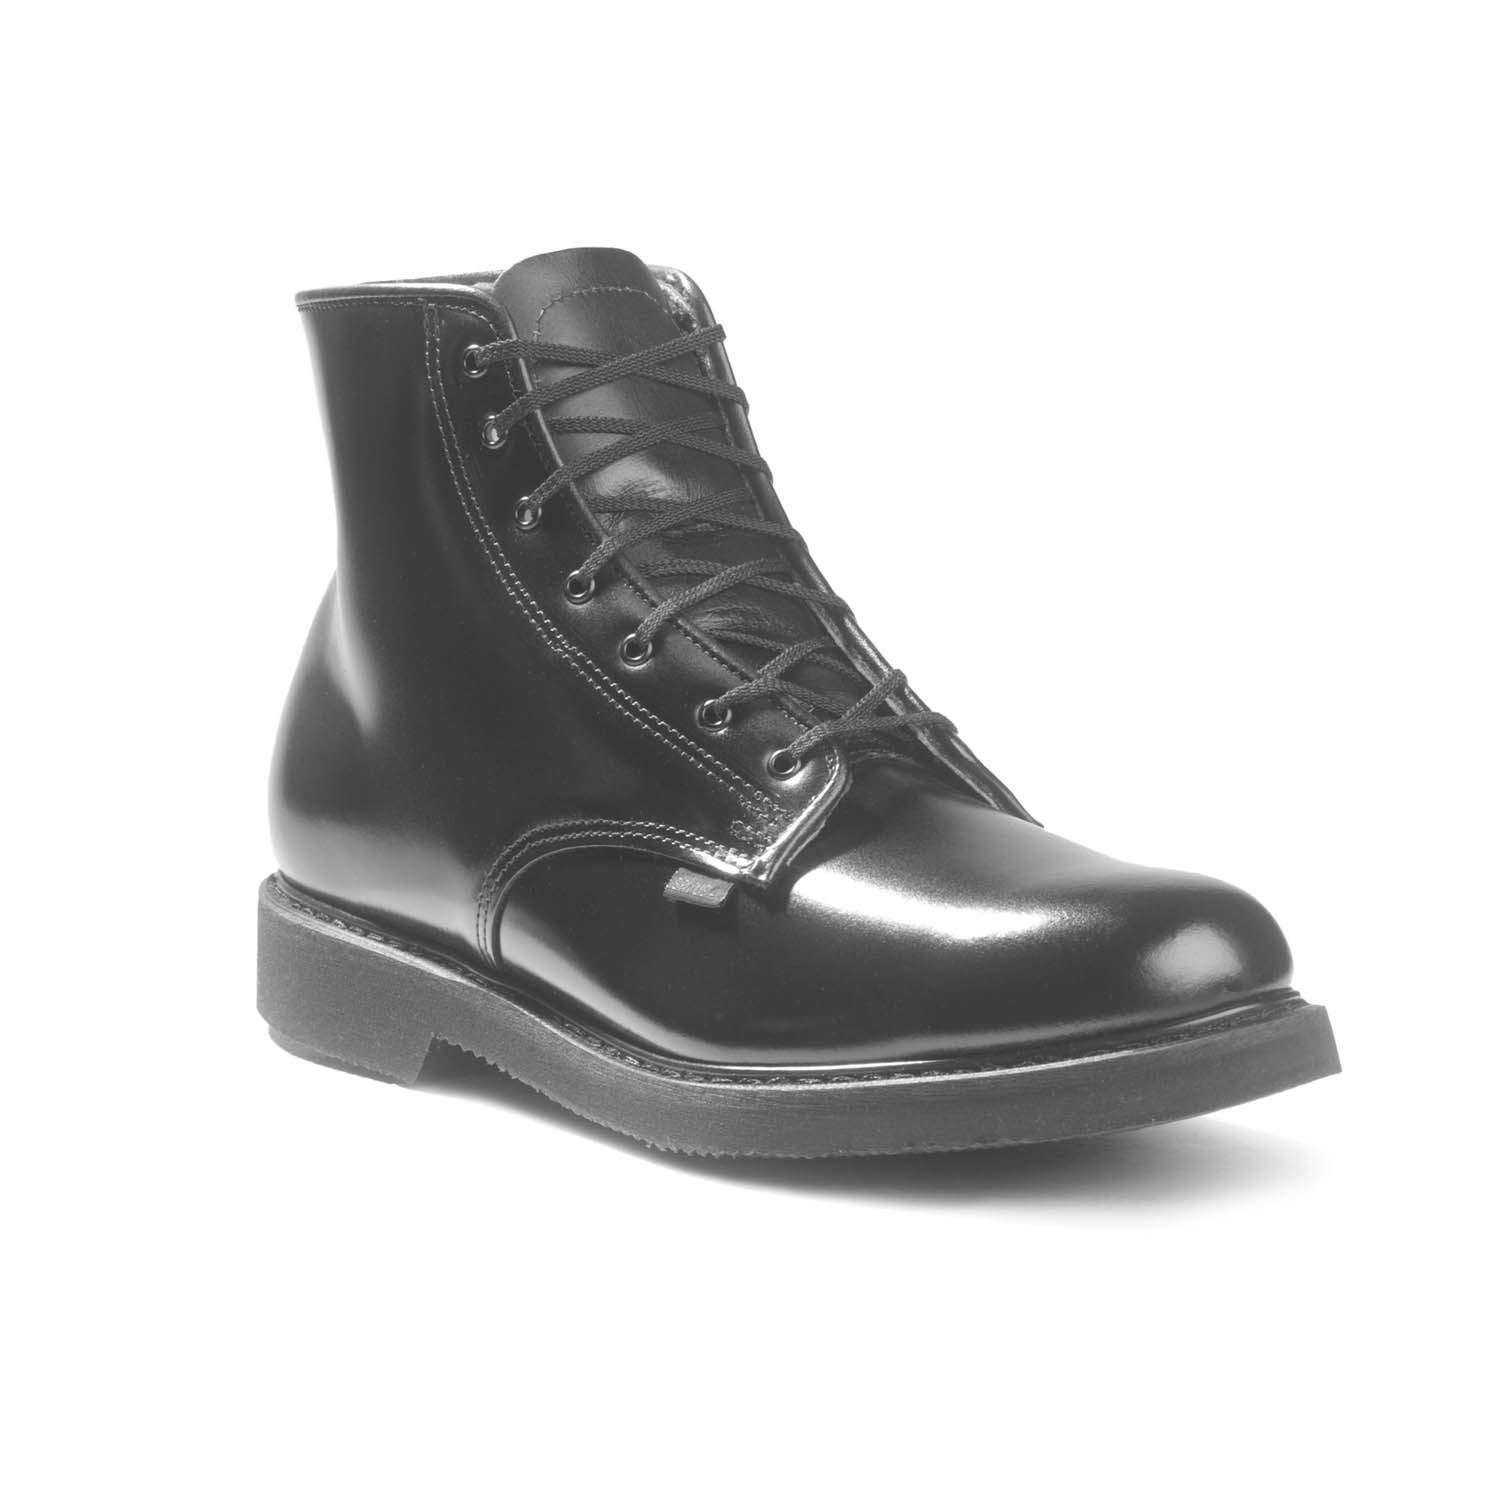 0b00ae8ee63 Bates Lites Leather Lace Up Chukka Boot.